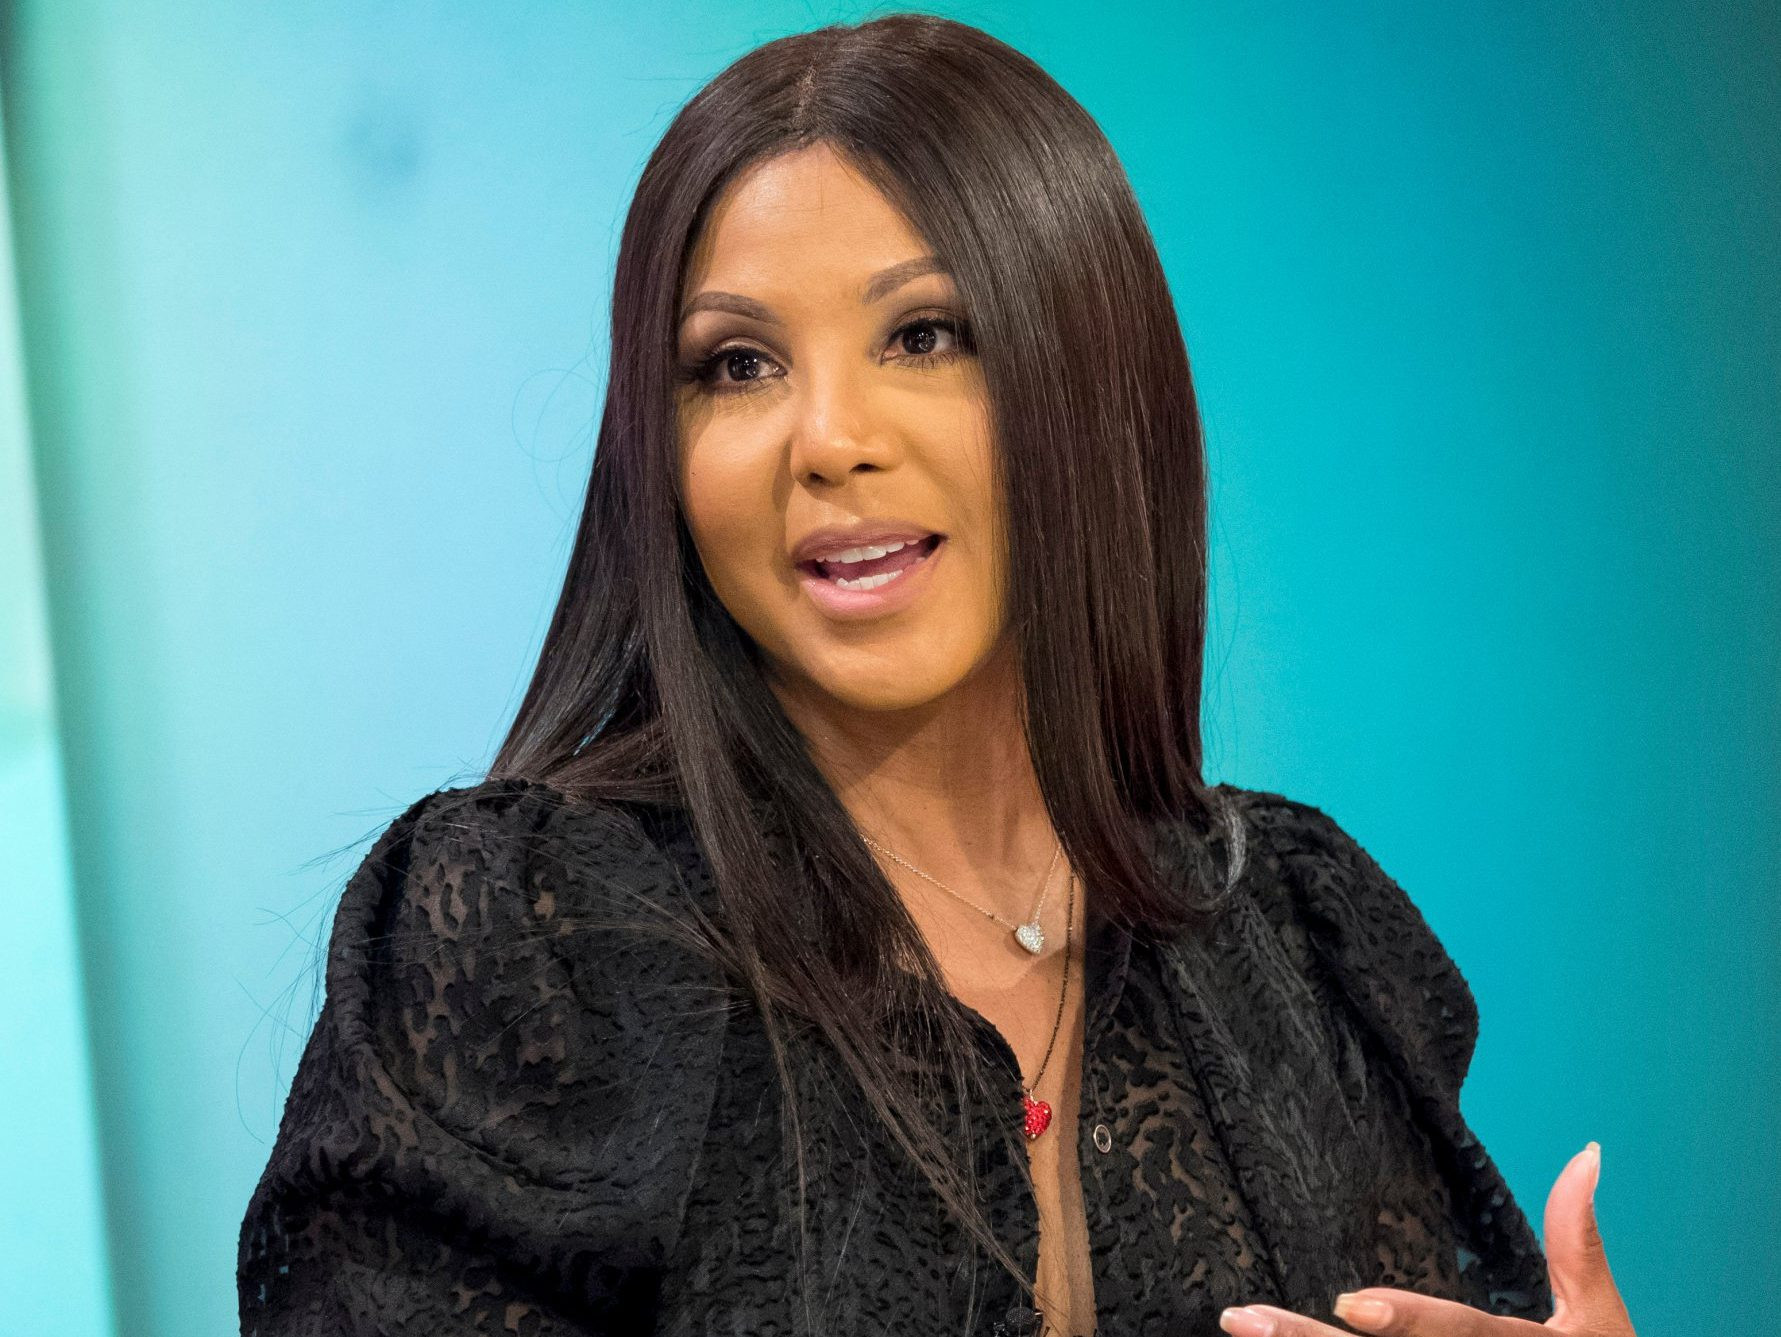 toni-braxton-makes-fans-happy-with-a-jaw-dropping-throwback-photo